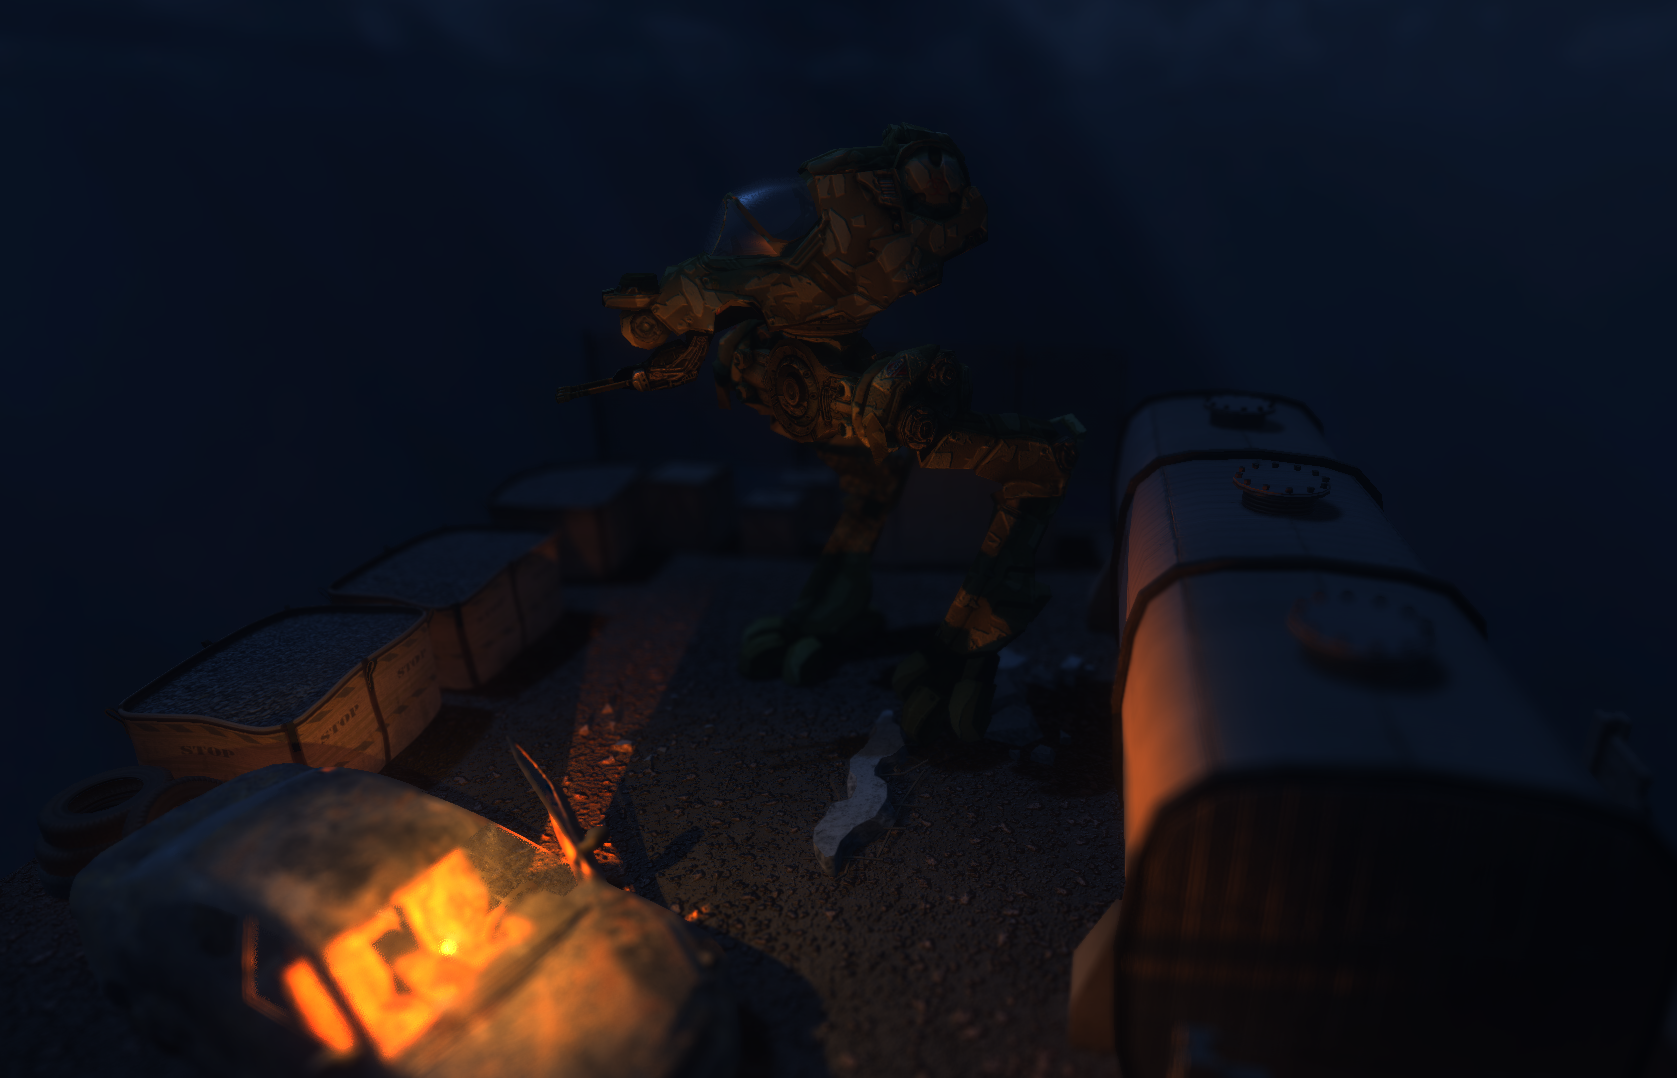 Unity 5 WebGL Walker Diorama in Editor. Note: Image effects are not yet available in WebGL.